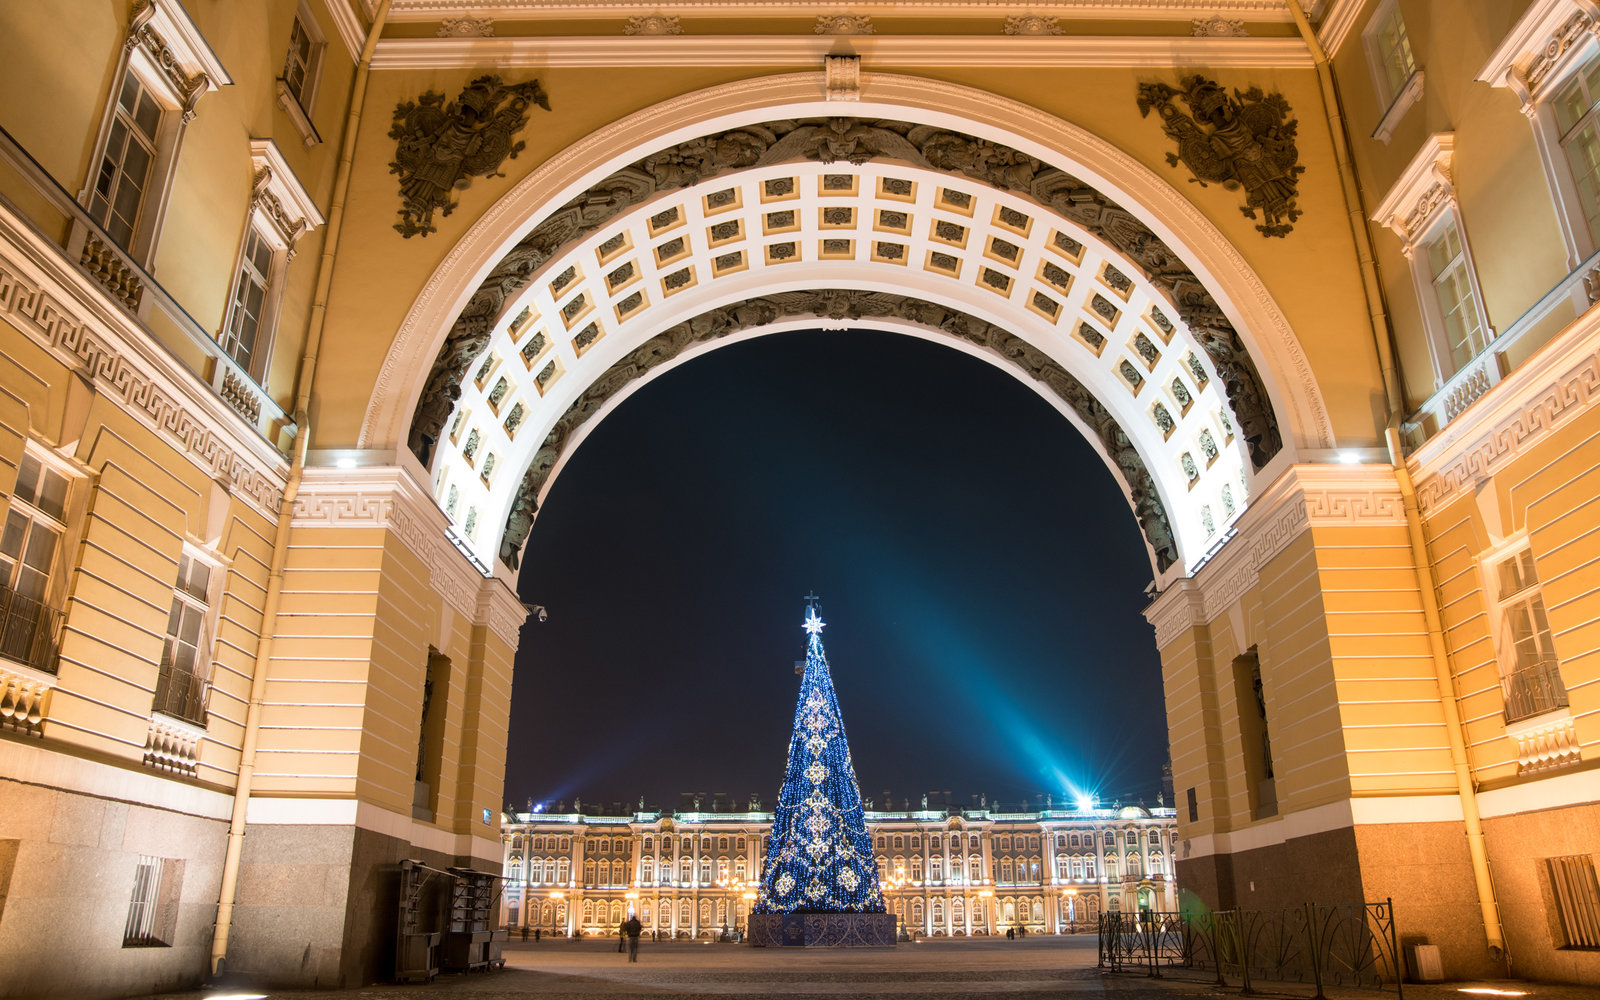 St. Petersburg Russia New Year's Eve